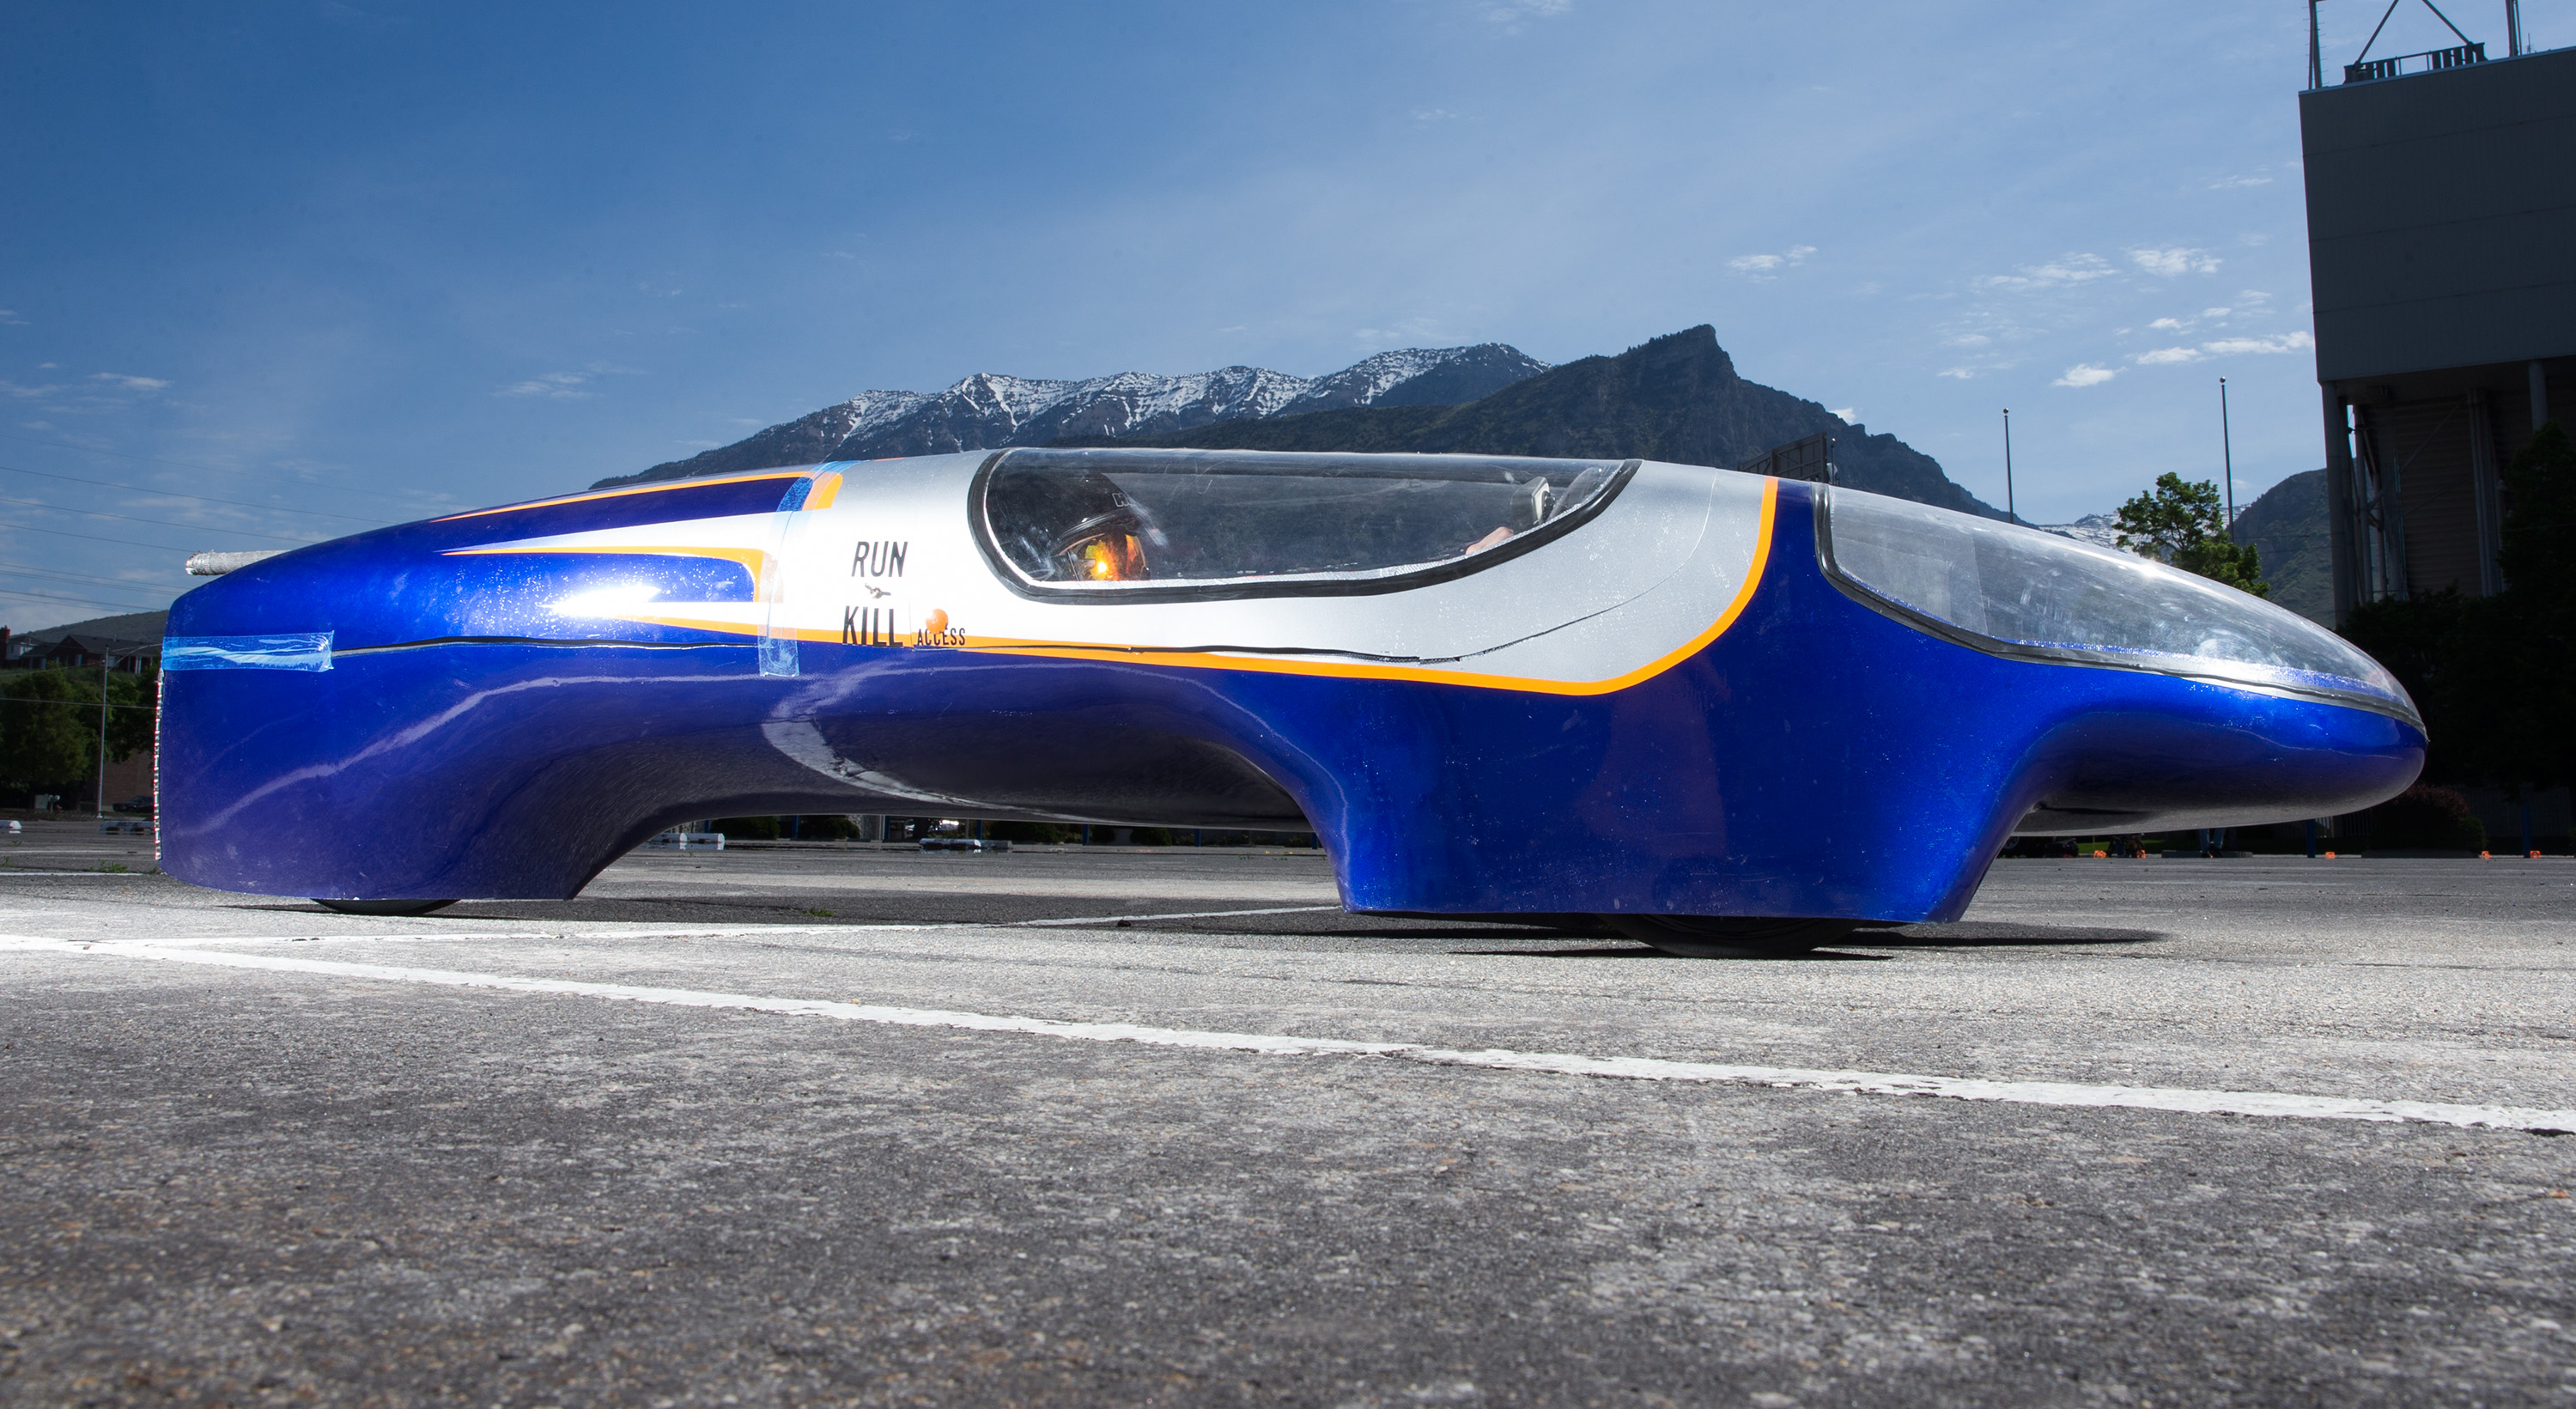 Supermileage Vehicle Is All About The Mpg Not The Mph